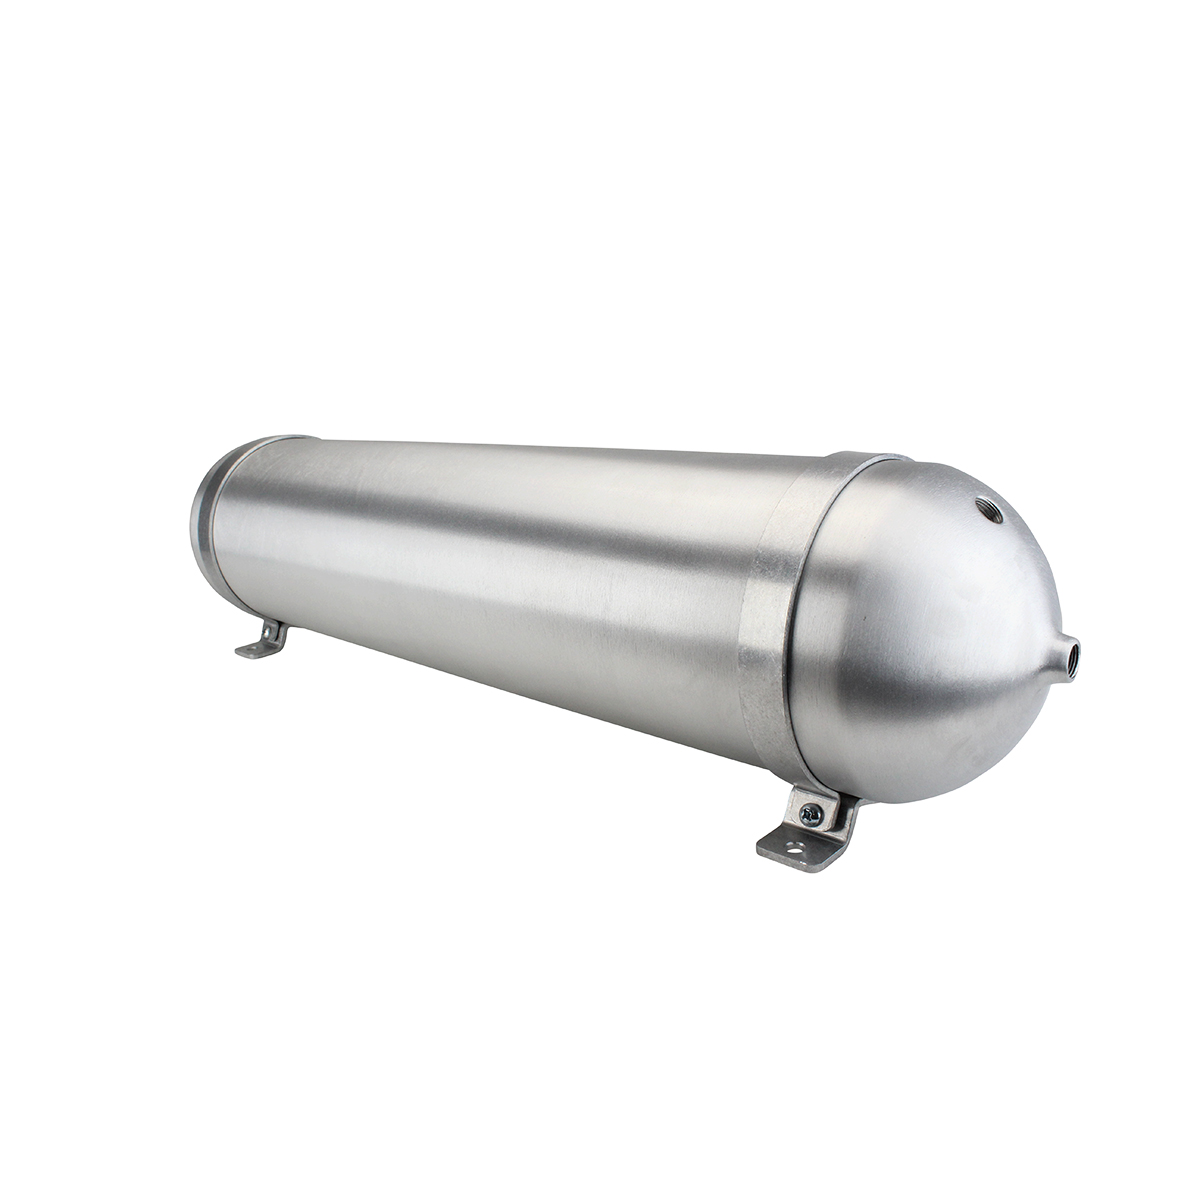 "SA632038-01 Seamless Tanks Aluminum Air Tank 32"" Length 6.625"" Diameter, (4) 3/8"" Ports (1) 1/4"" Port, 200 psi Rated, 4 Gallons"